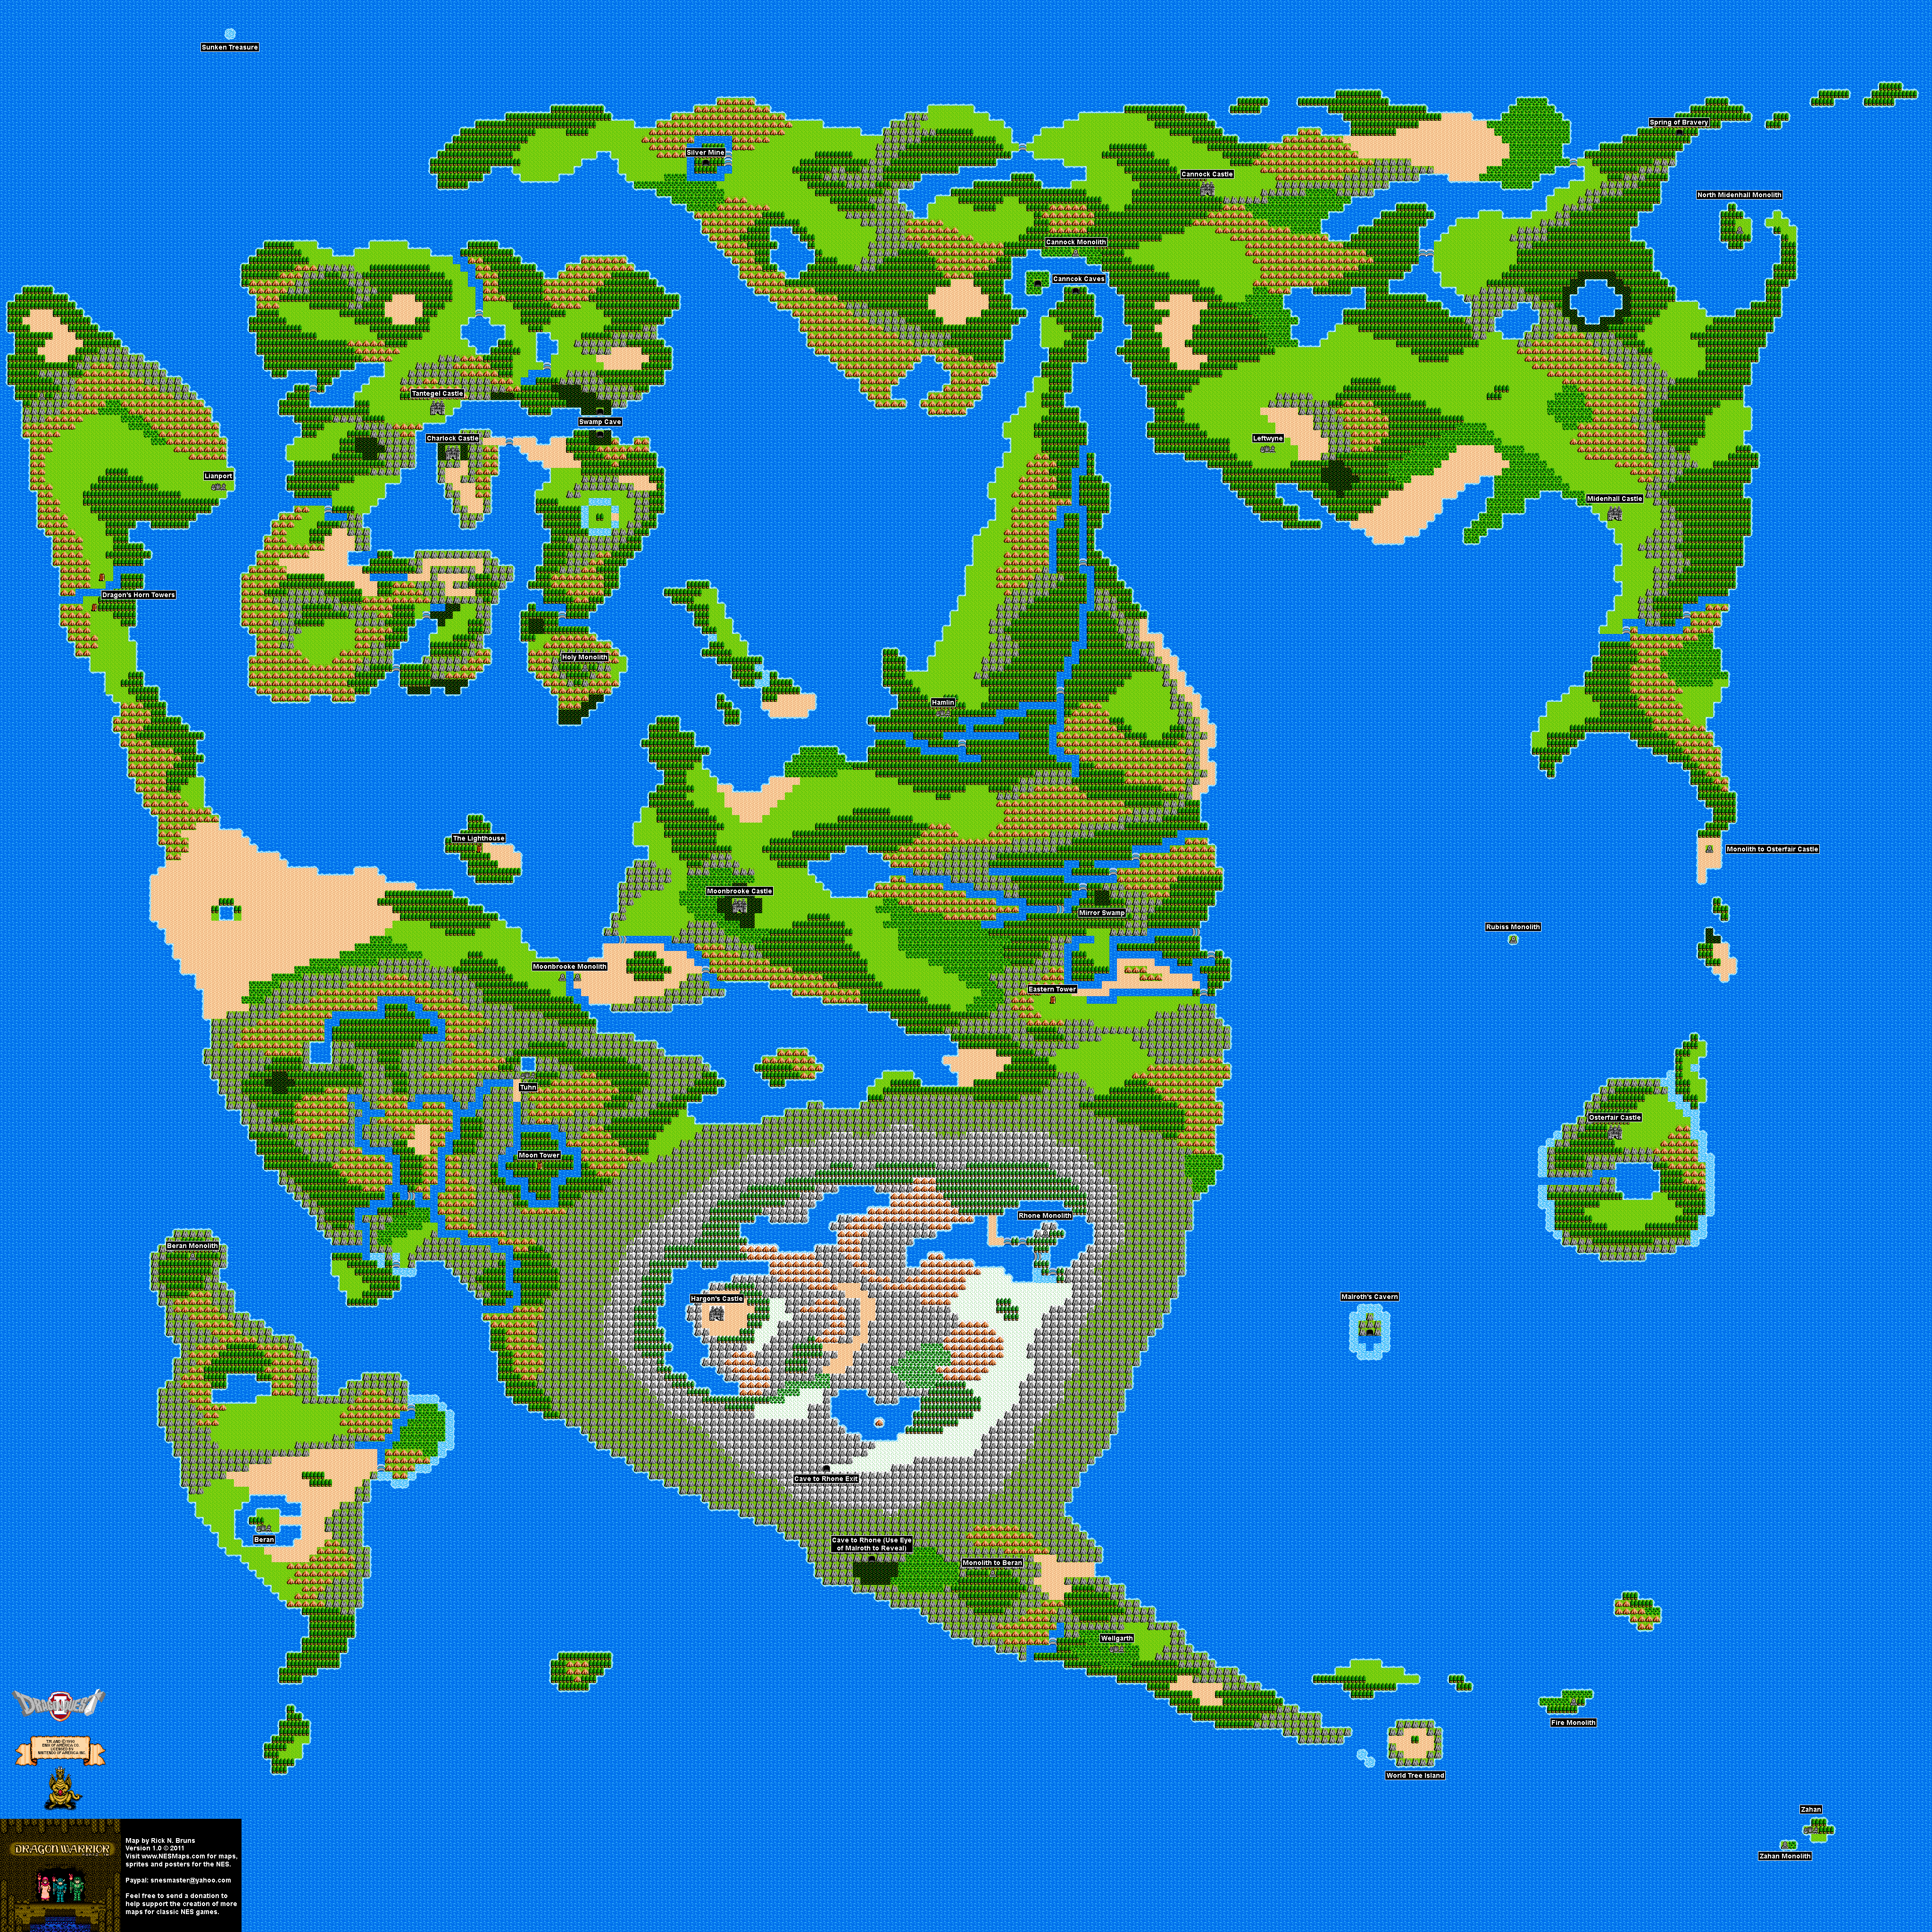 DragonWarrior2OverworldMap Dragon Warrior Map on just cause 2 map, the legend of zelda, double dragon, dragon quest monsters: joker 2, dragon quest viii: journey of the cursed king, dragon quest, crash bandicoot 2 map, dragon quest vi: realms of revelation, super mario brothers 2 map, ducktales 2 map, breath of fire 2 map, dragon quest v: hand of the heavenly bride, dark souls 2 map, jurassic park 2 map, dragon mountain map, crusader kings 2 map, dragon warrior iii, asia after world war 2 map, dragon quest world map, call of duty 2 map, dragon quest 4 map, indiana jones 2 map, forza horizon 2 map, chrono cross, adventure island 2 map, dragon tree map, dragon quest ix: sentinels of the starry skies, castlevania 2 map, wario land 2 map, infinity blade 2 map, dragon warrior monsters,